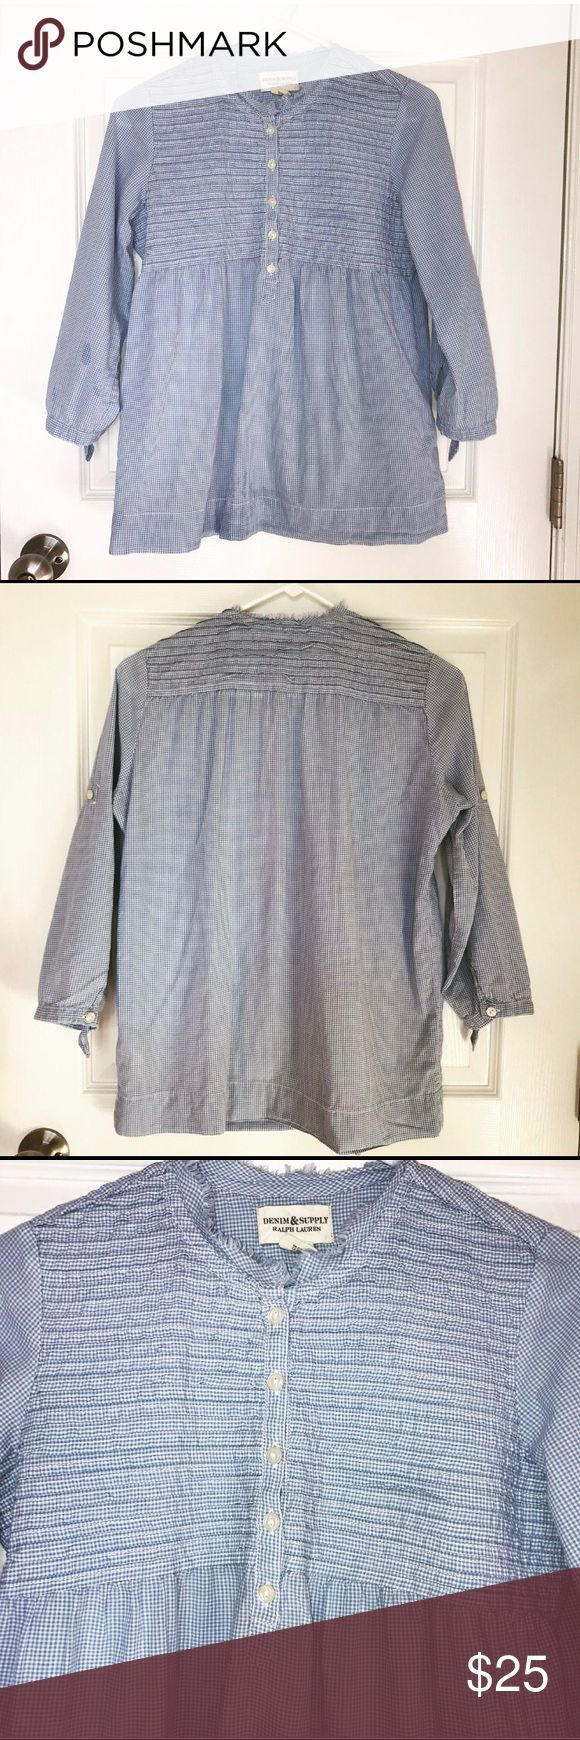 """Demin & Supply Ralph Lauren Boho Peasant Gingham Excellent used condition. Light weight. 3/4 Sleeves. 100% cotton.  Approximate measurements with garment lying flat:  Shoulder - 13.5"""",  chest (armpit to armpit) - 18.25"""", waist - 19.5"""", length - 24.25"""", Sleeve length shoulder to cuff - 18"""", sleeve length pit to cuff -  12.5"""" Denim & Supply Ralph Lauren Tops Blouses"""